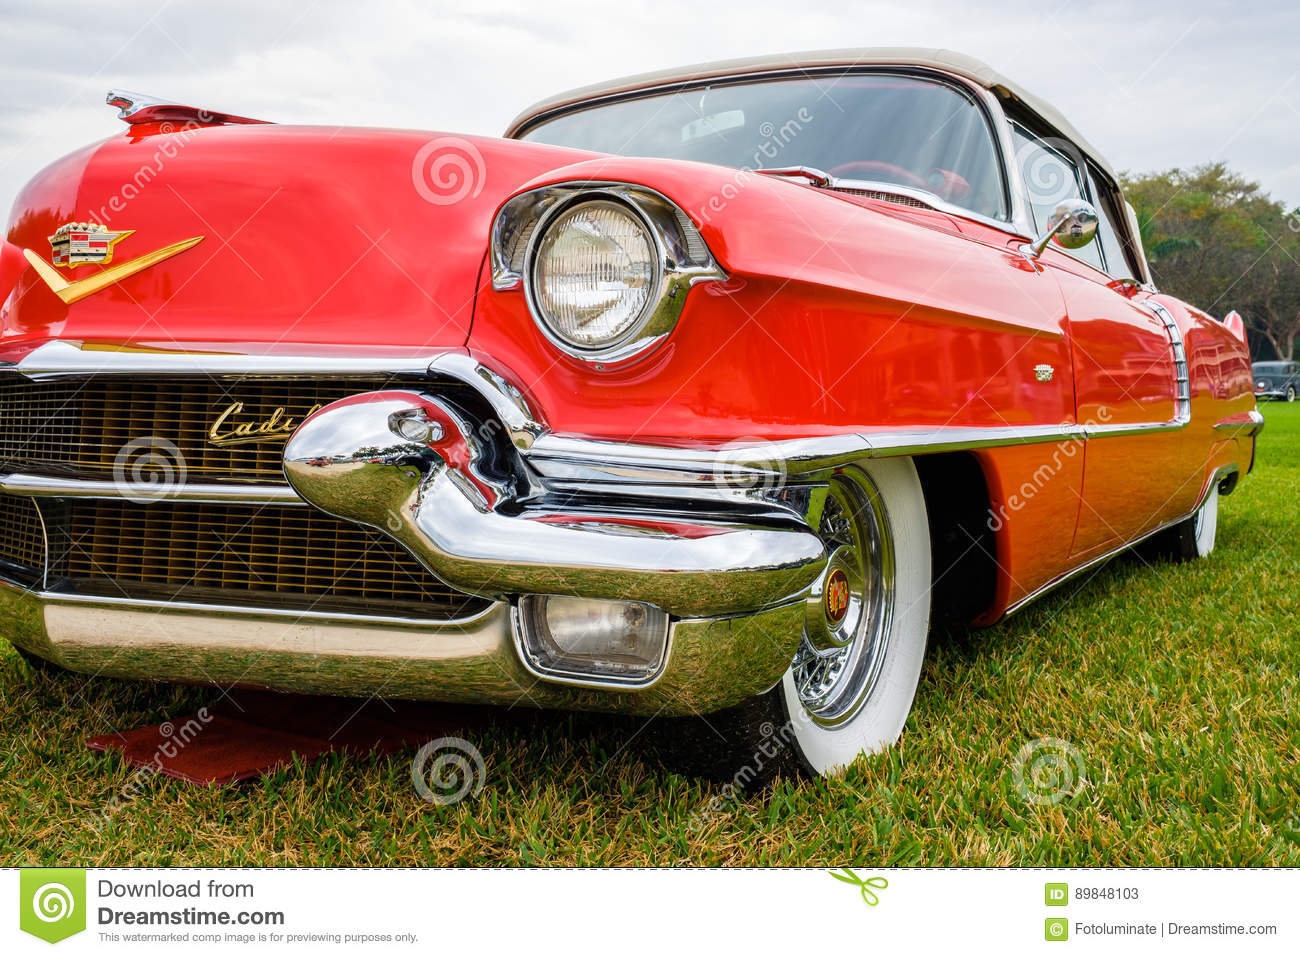 Vintage Cadillac Automobile Editorial Stock Photo Image Of States